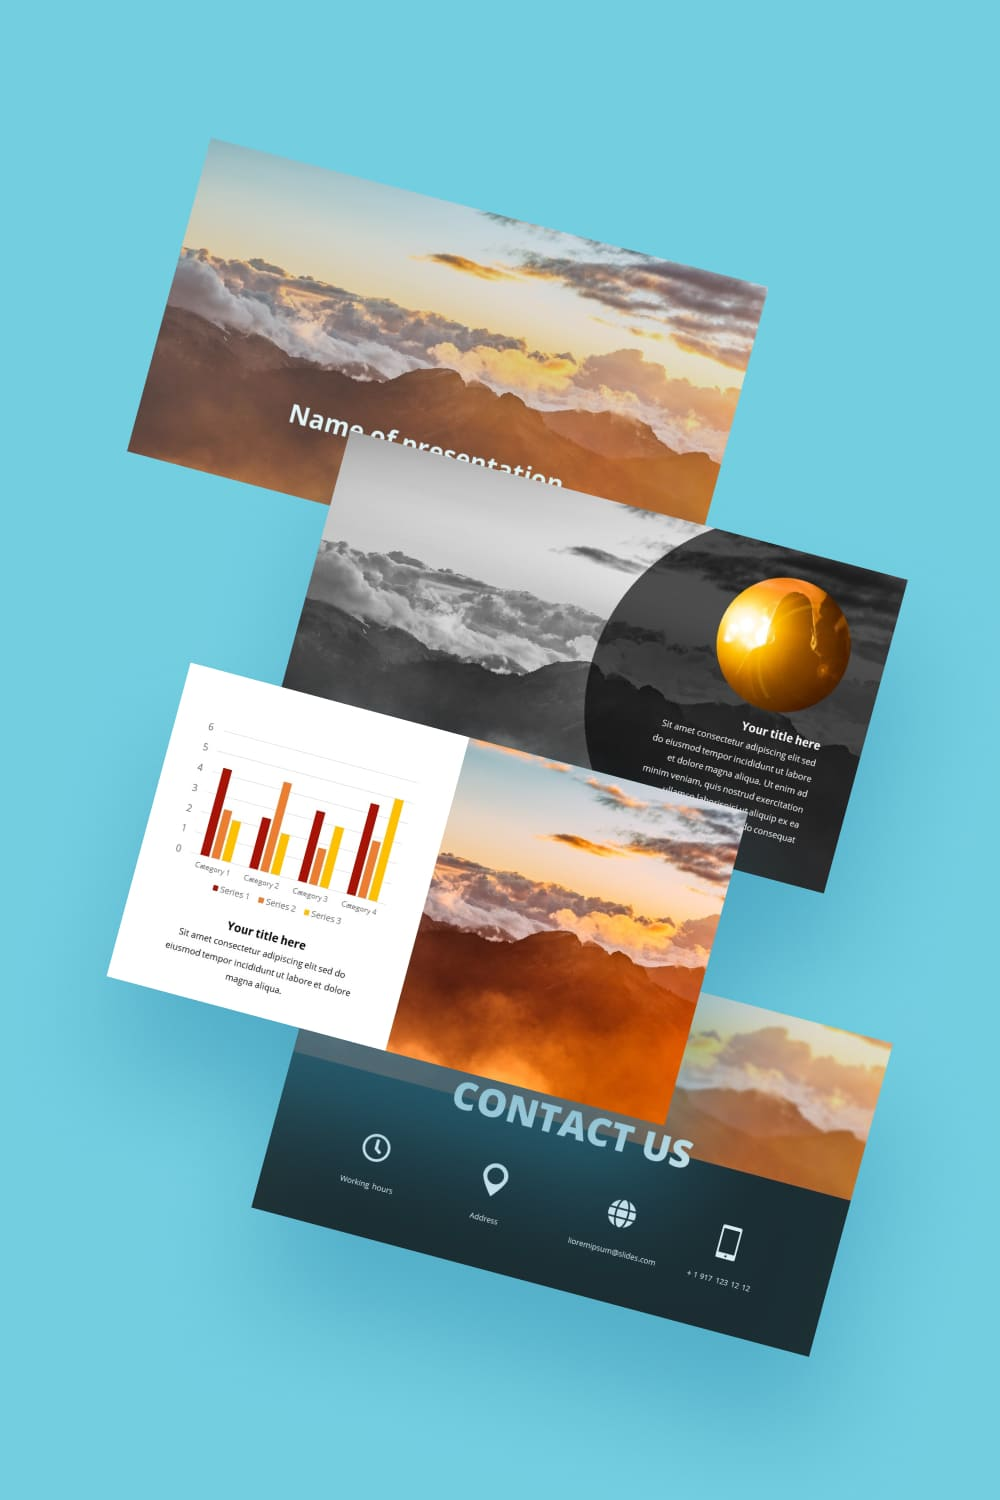 The brightness and dynamism of this template is attractive. The design is simple yet modern, which makes it possible to use it for different themes.